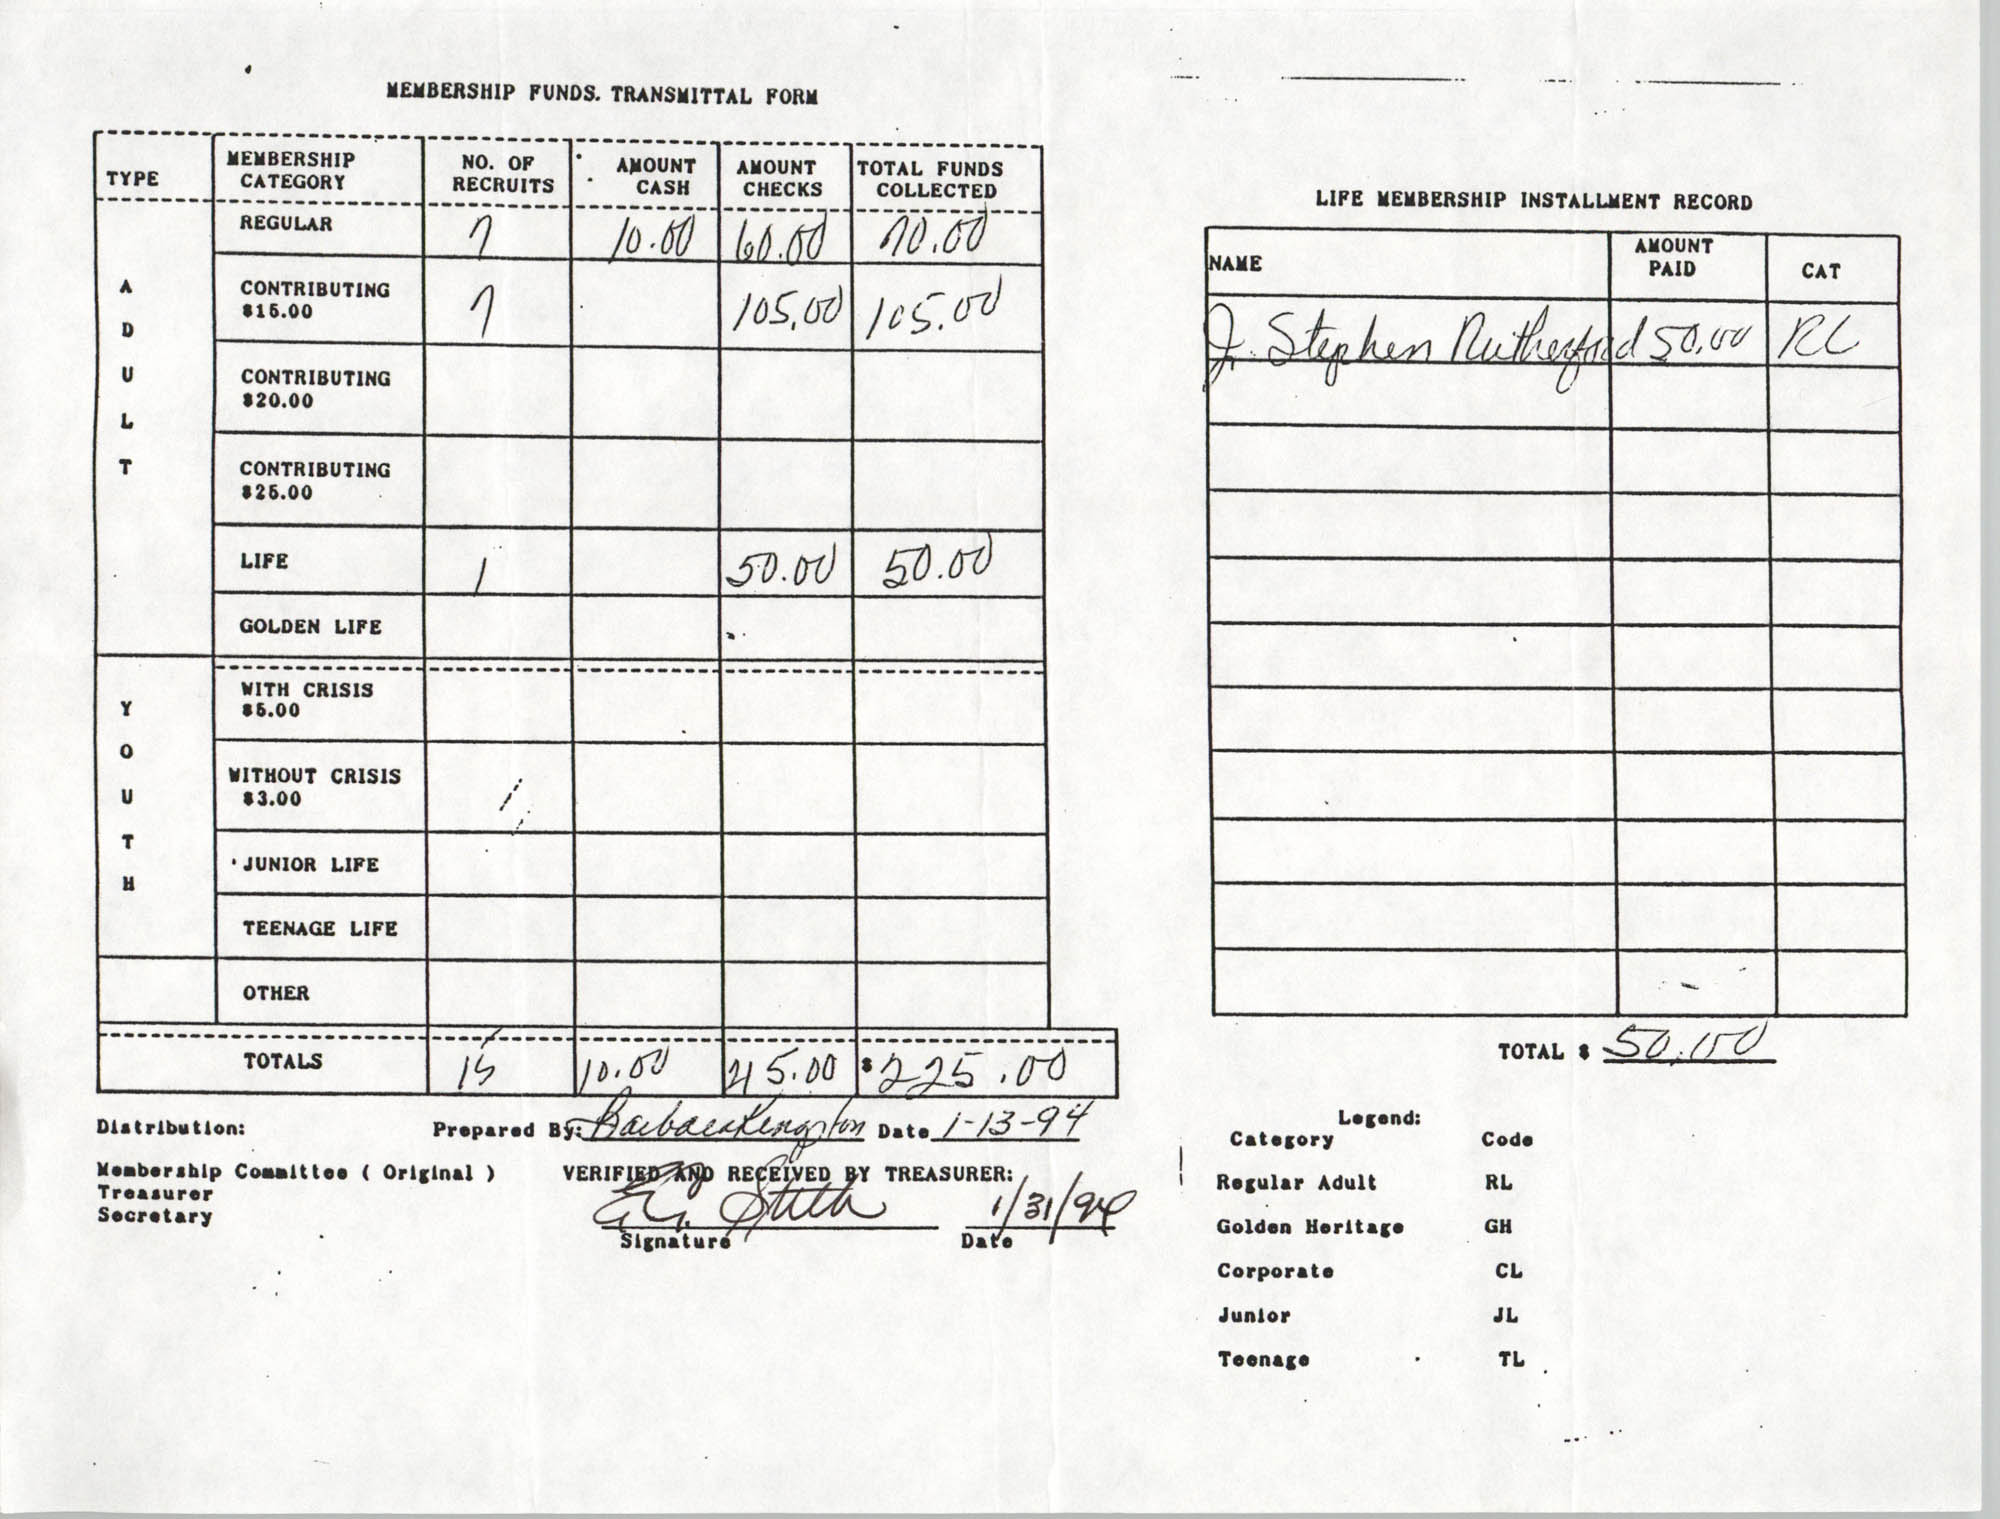 Charleston Branch of the NAACP Funds Transmittal Forms, January 1994, Page 1